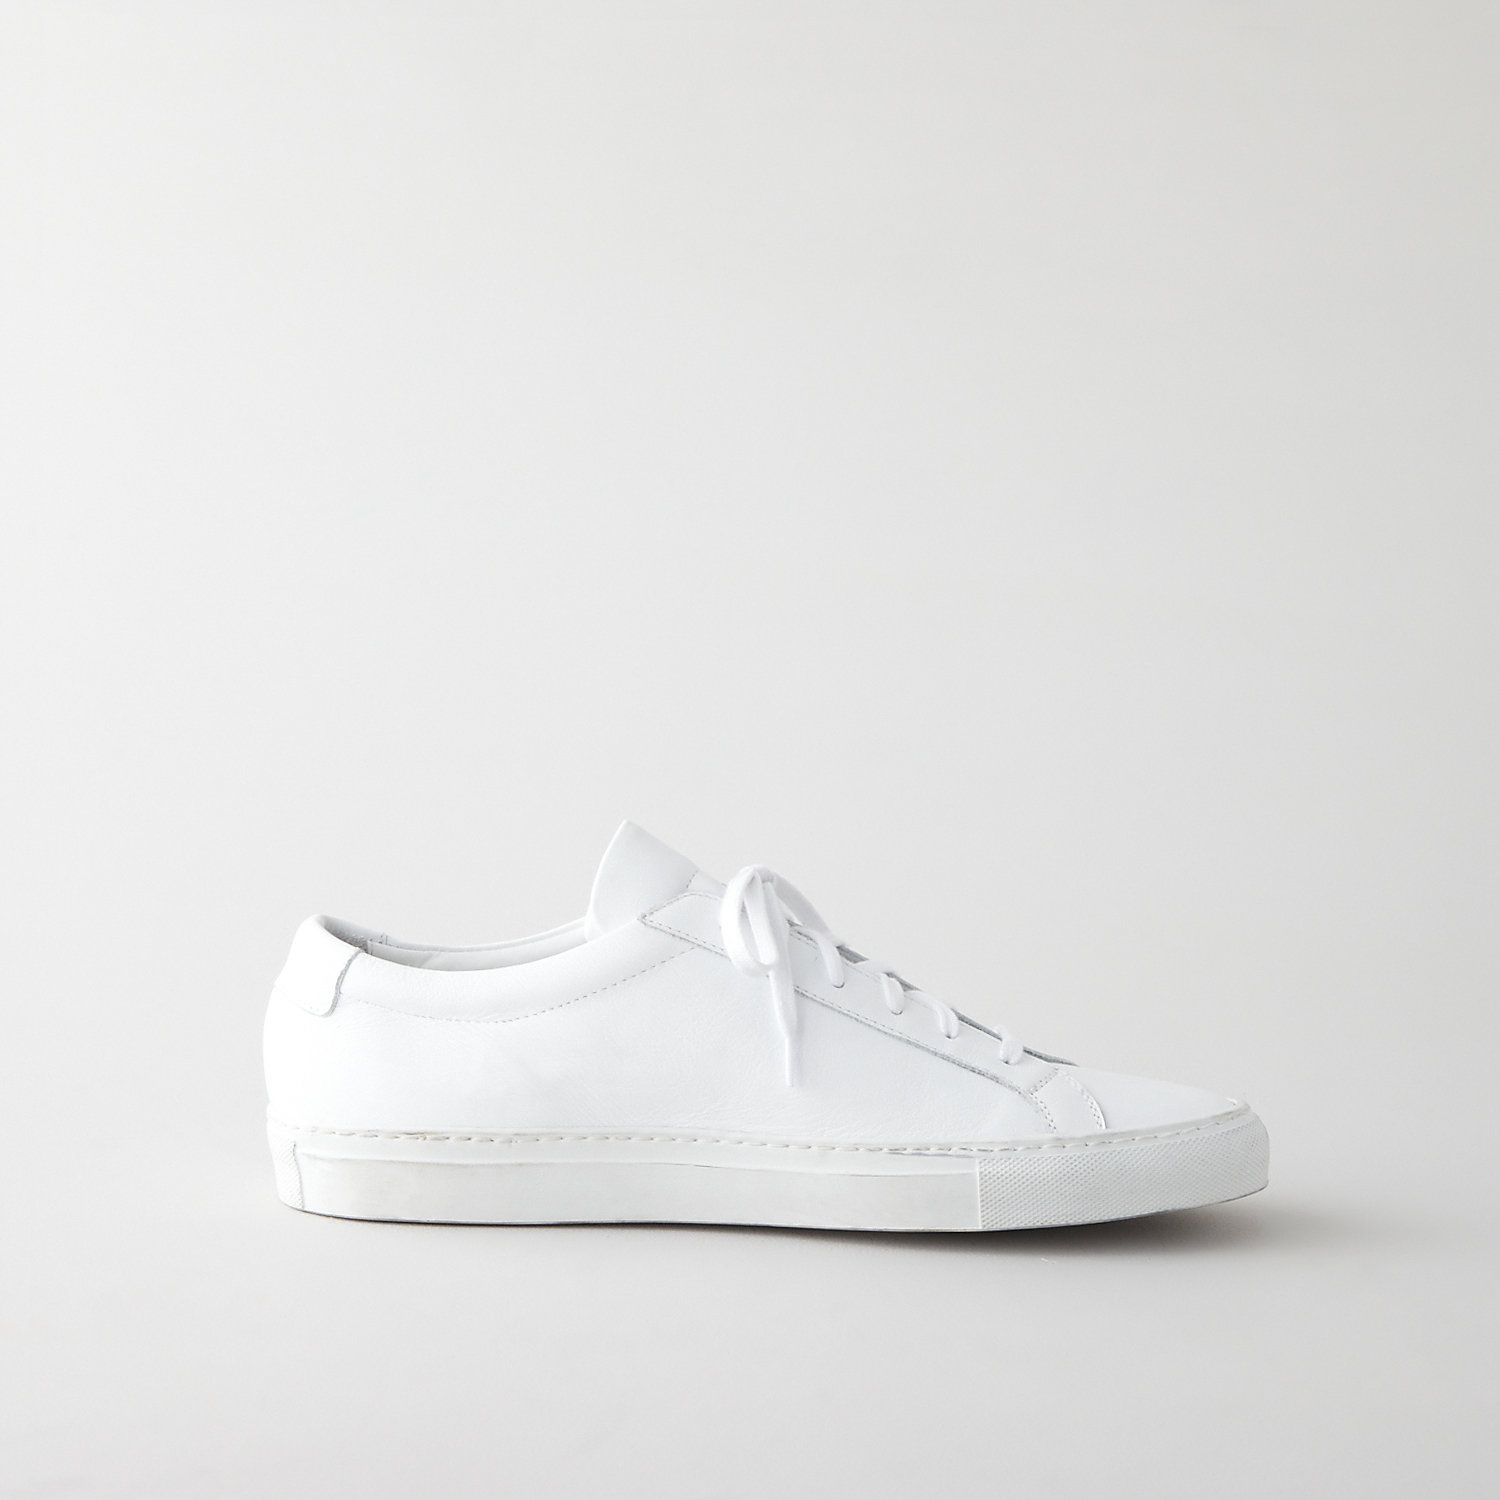 common projects original achilles low leather sneaker in white for men lyst. Black Bedroom Furniture Sets. Home Design Ideas